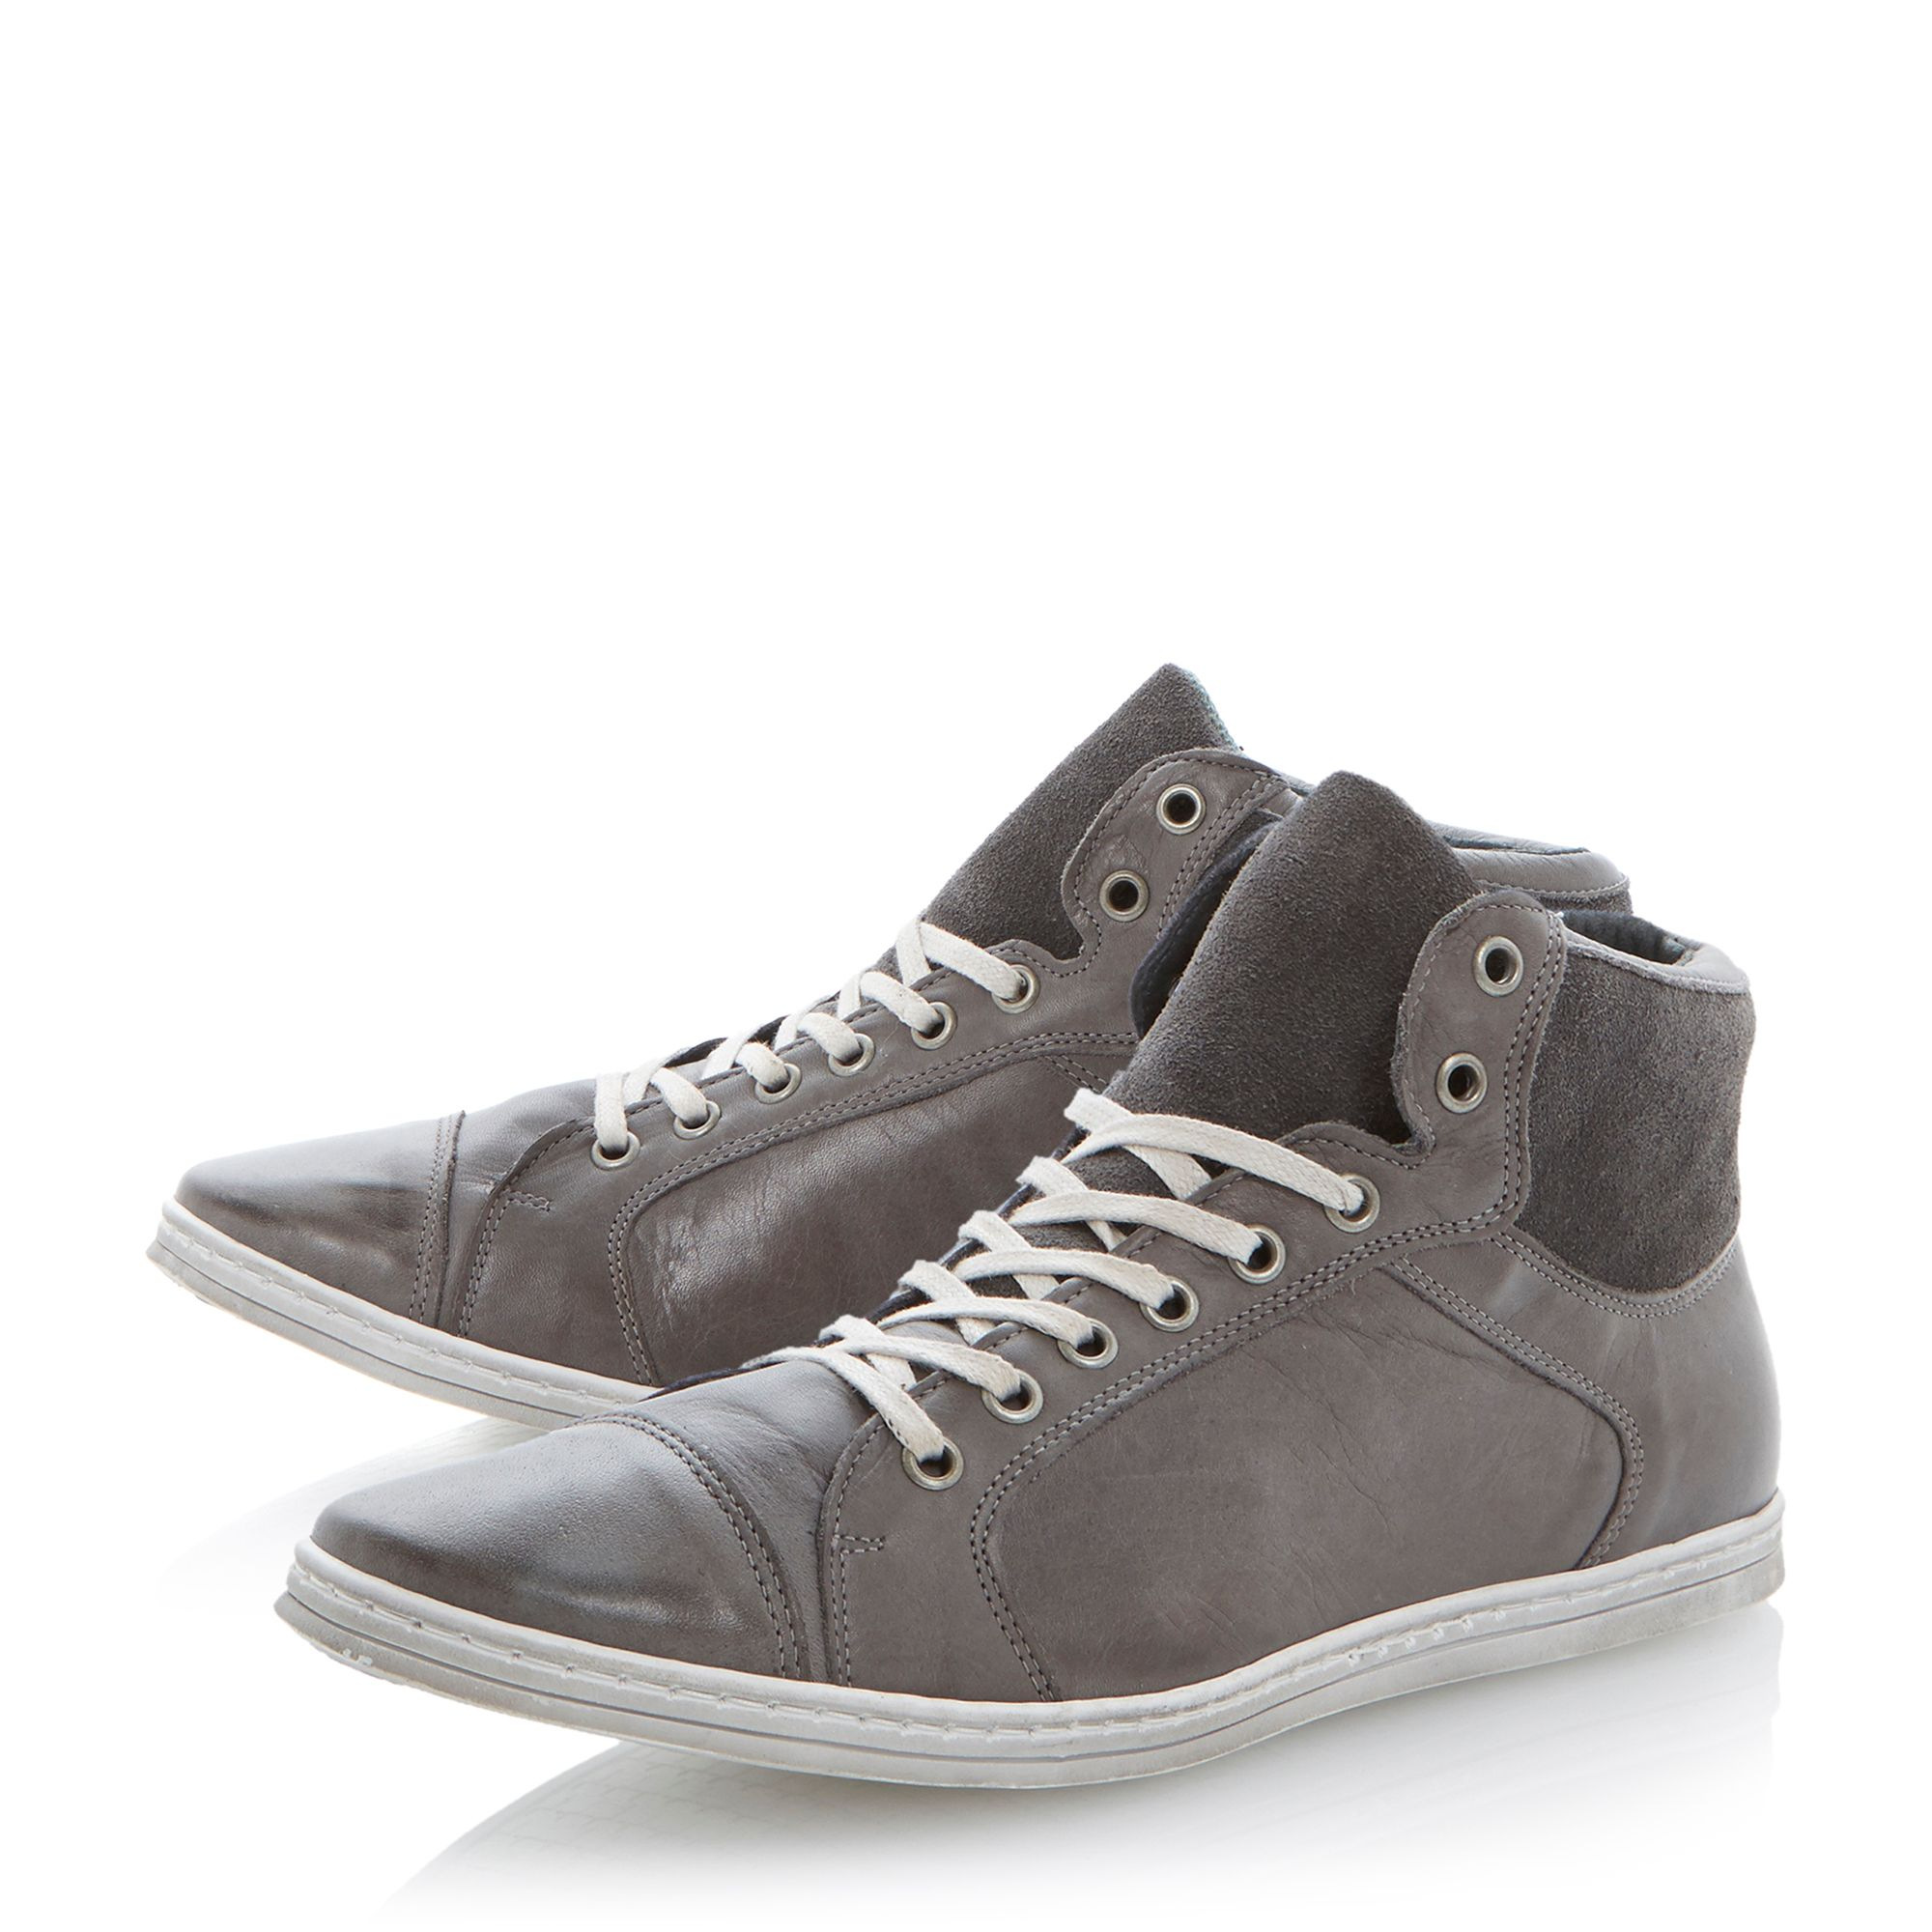 Sidewalk lace up toecap hi tops